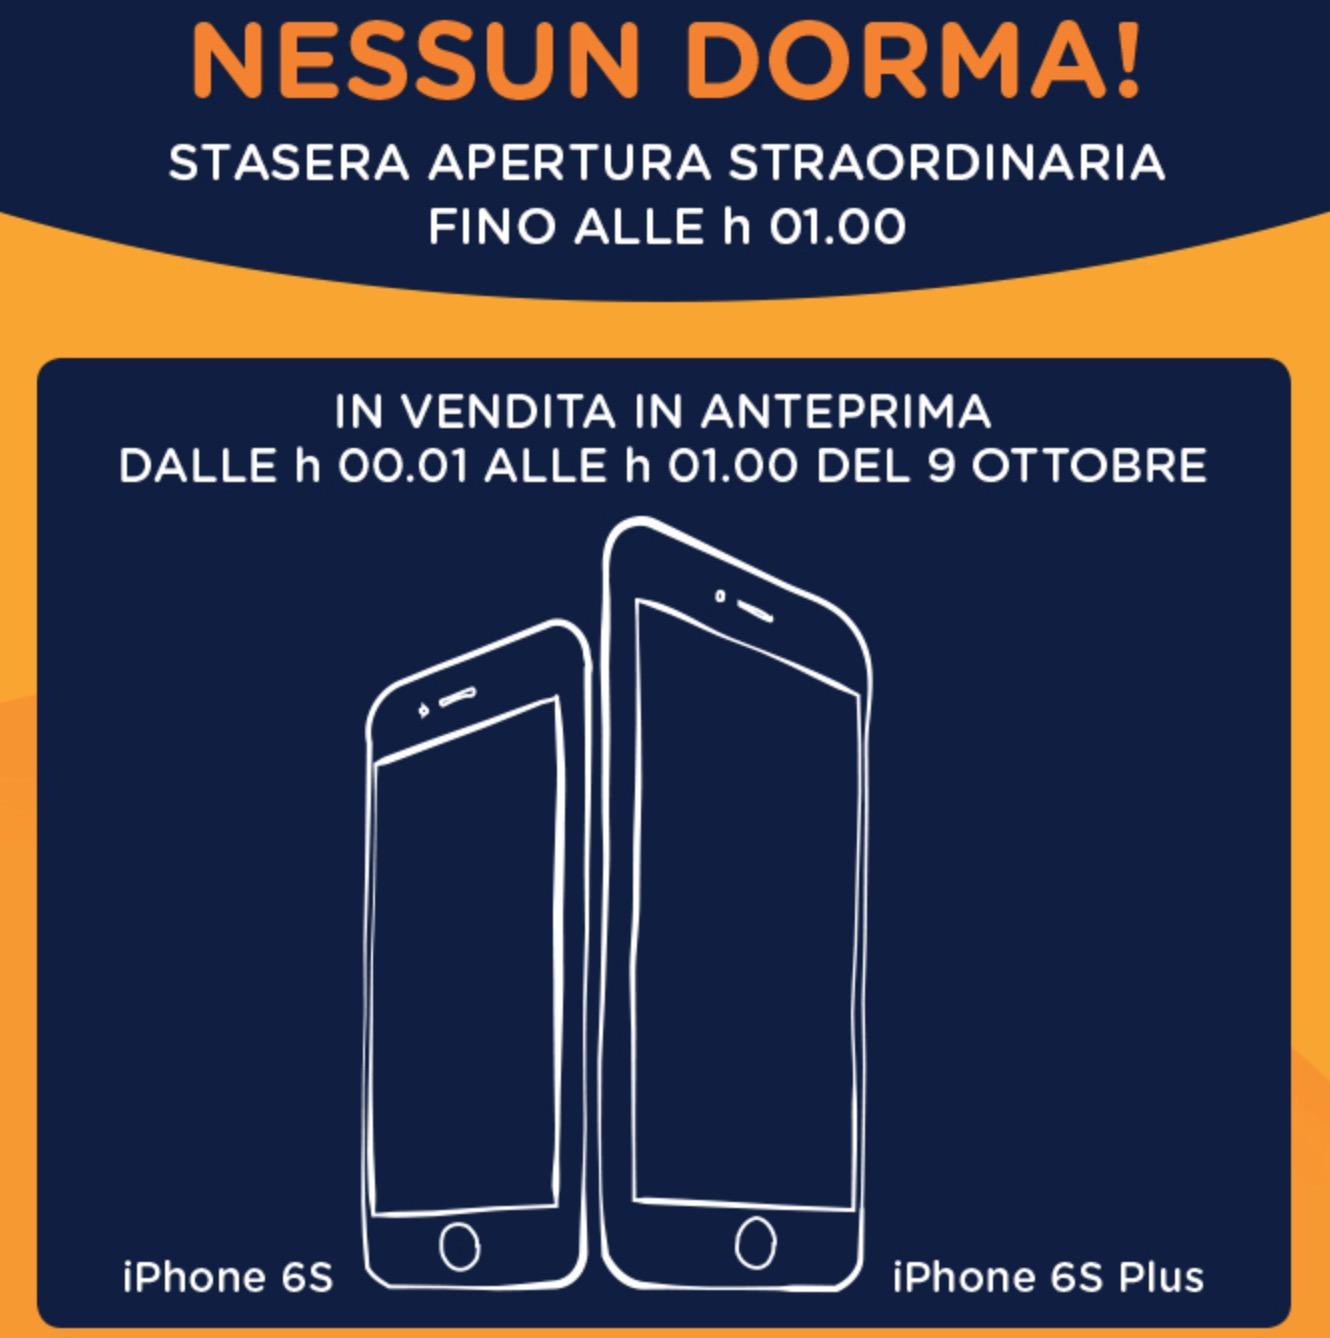 Notte Bianca iPhone 6s Unieuro